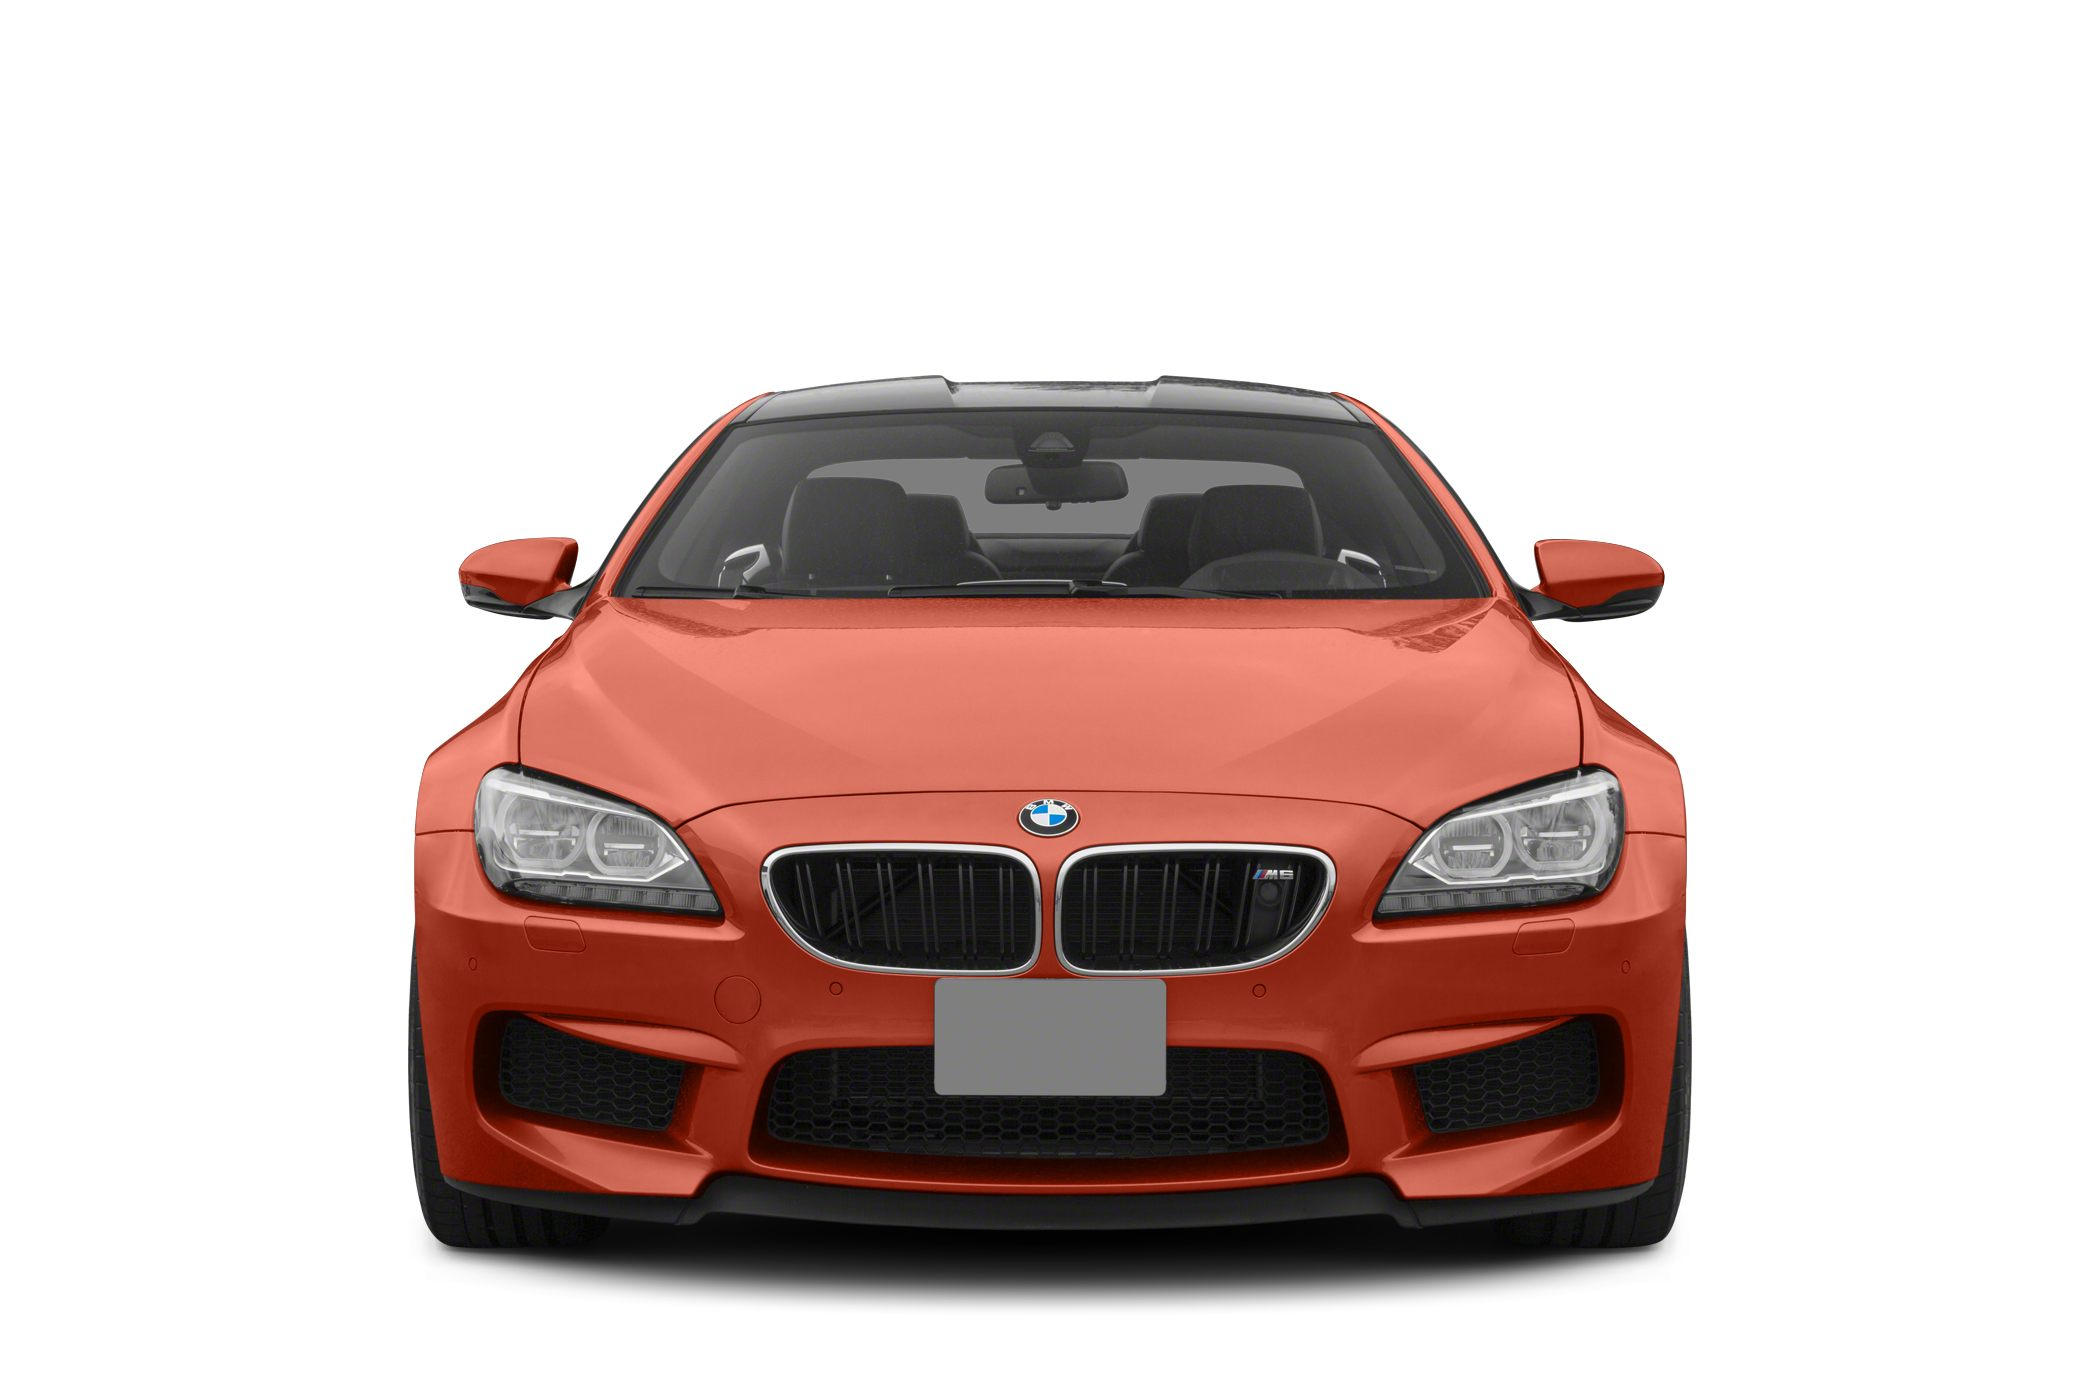 Bmw car front png